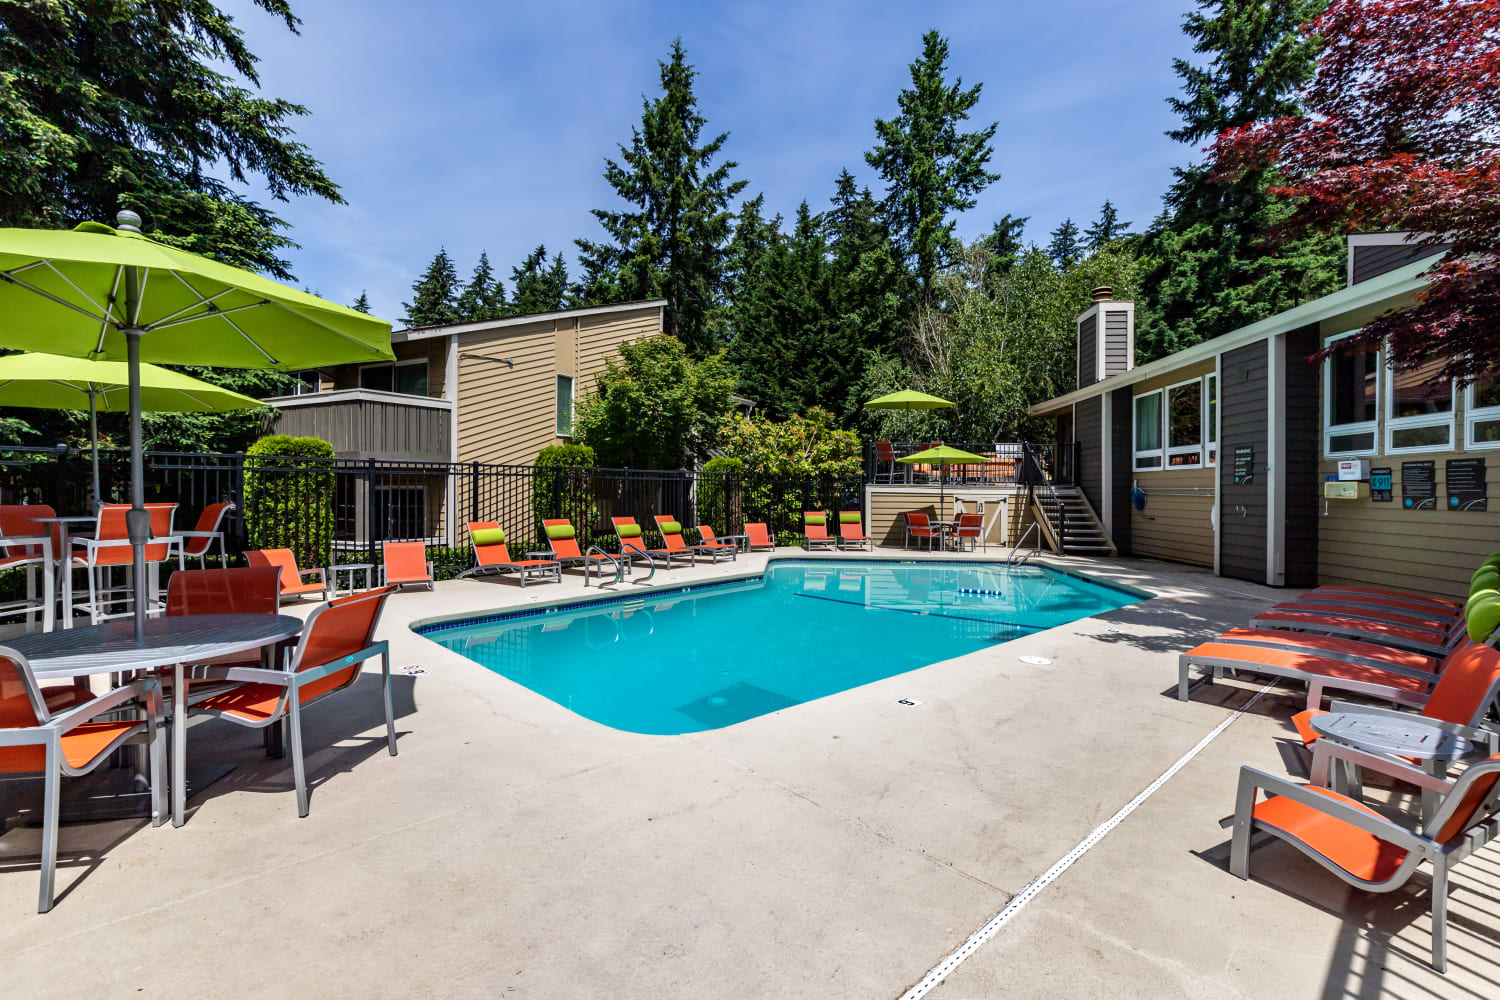 Pool at Vue Kirkland Apartments in Kirkland, Washington